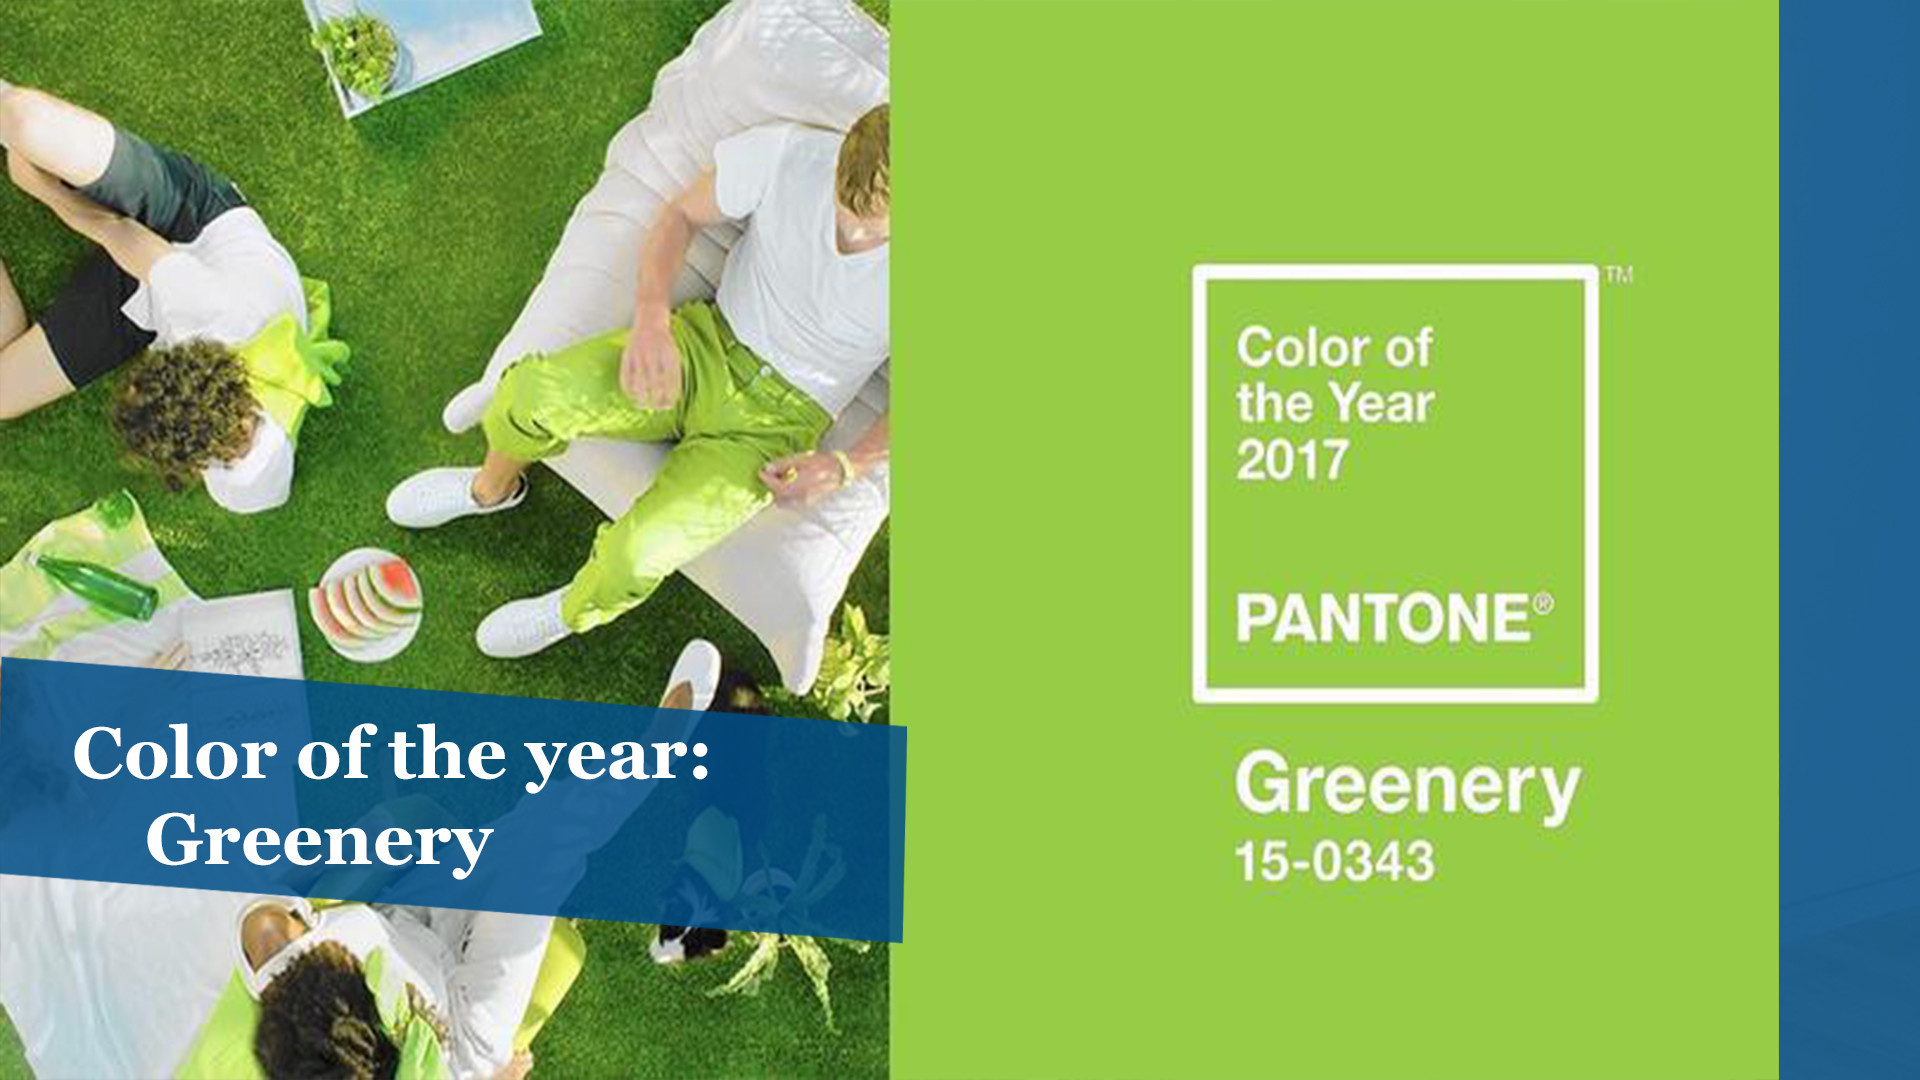 greenery 2017 pantone color of the year daily press. Black Bedroom Furniture Sets. Home Design Ideas